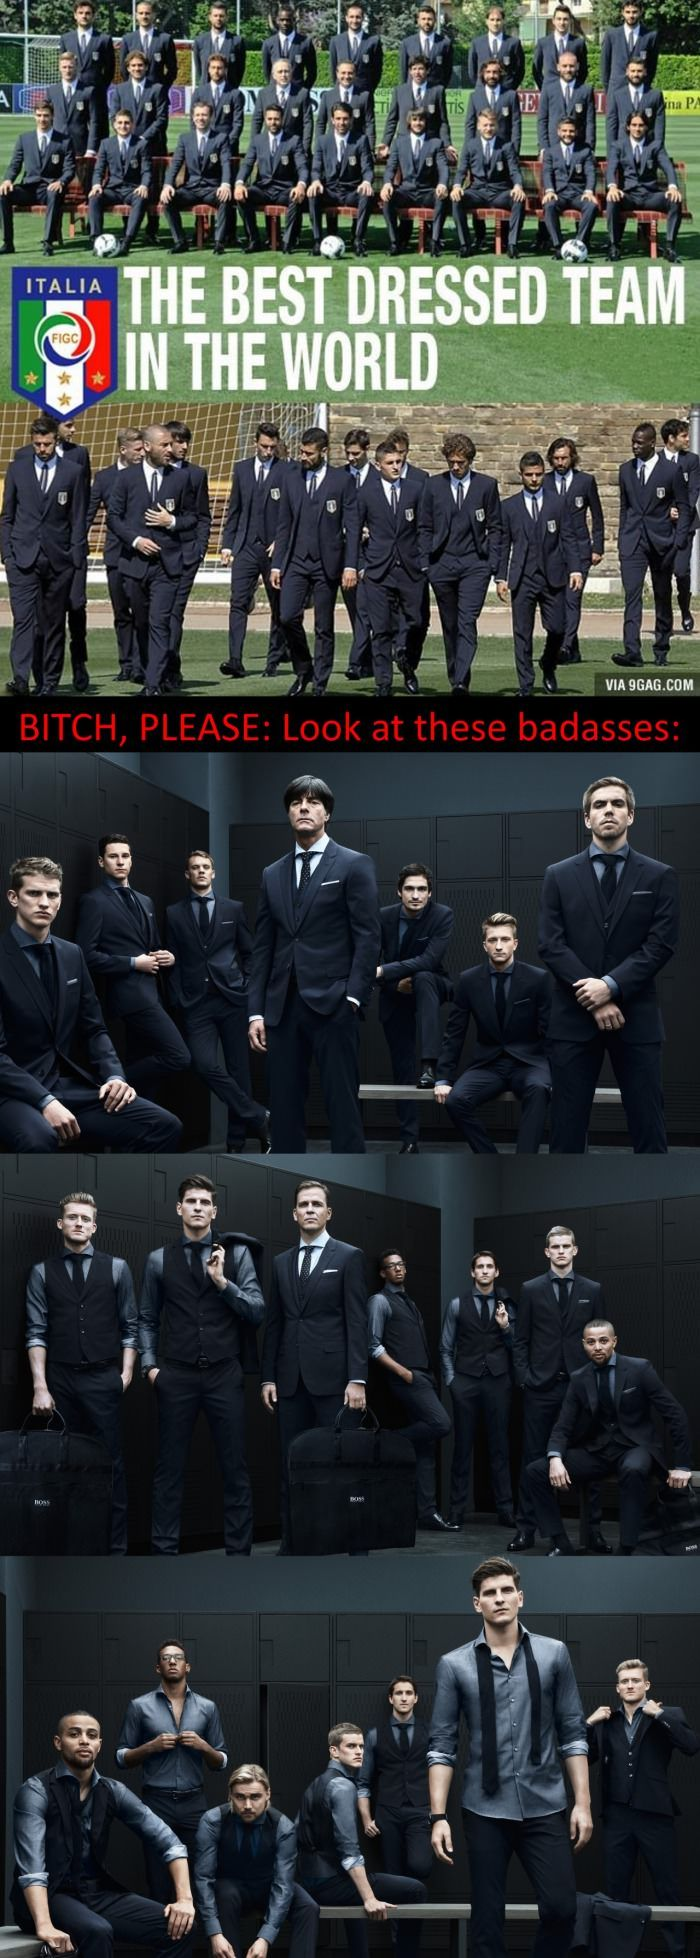 German Football Team Dressed by Hugo Boss - Excuse the language, but seriously. Look at those dapper German guys. You can't compare Italy to THAT.